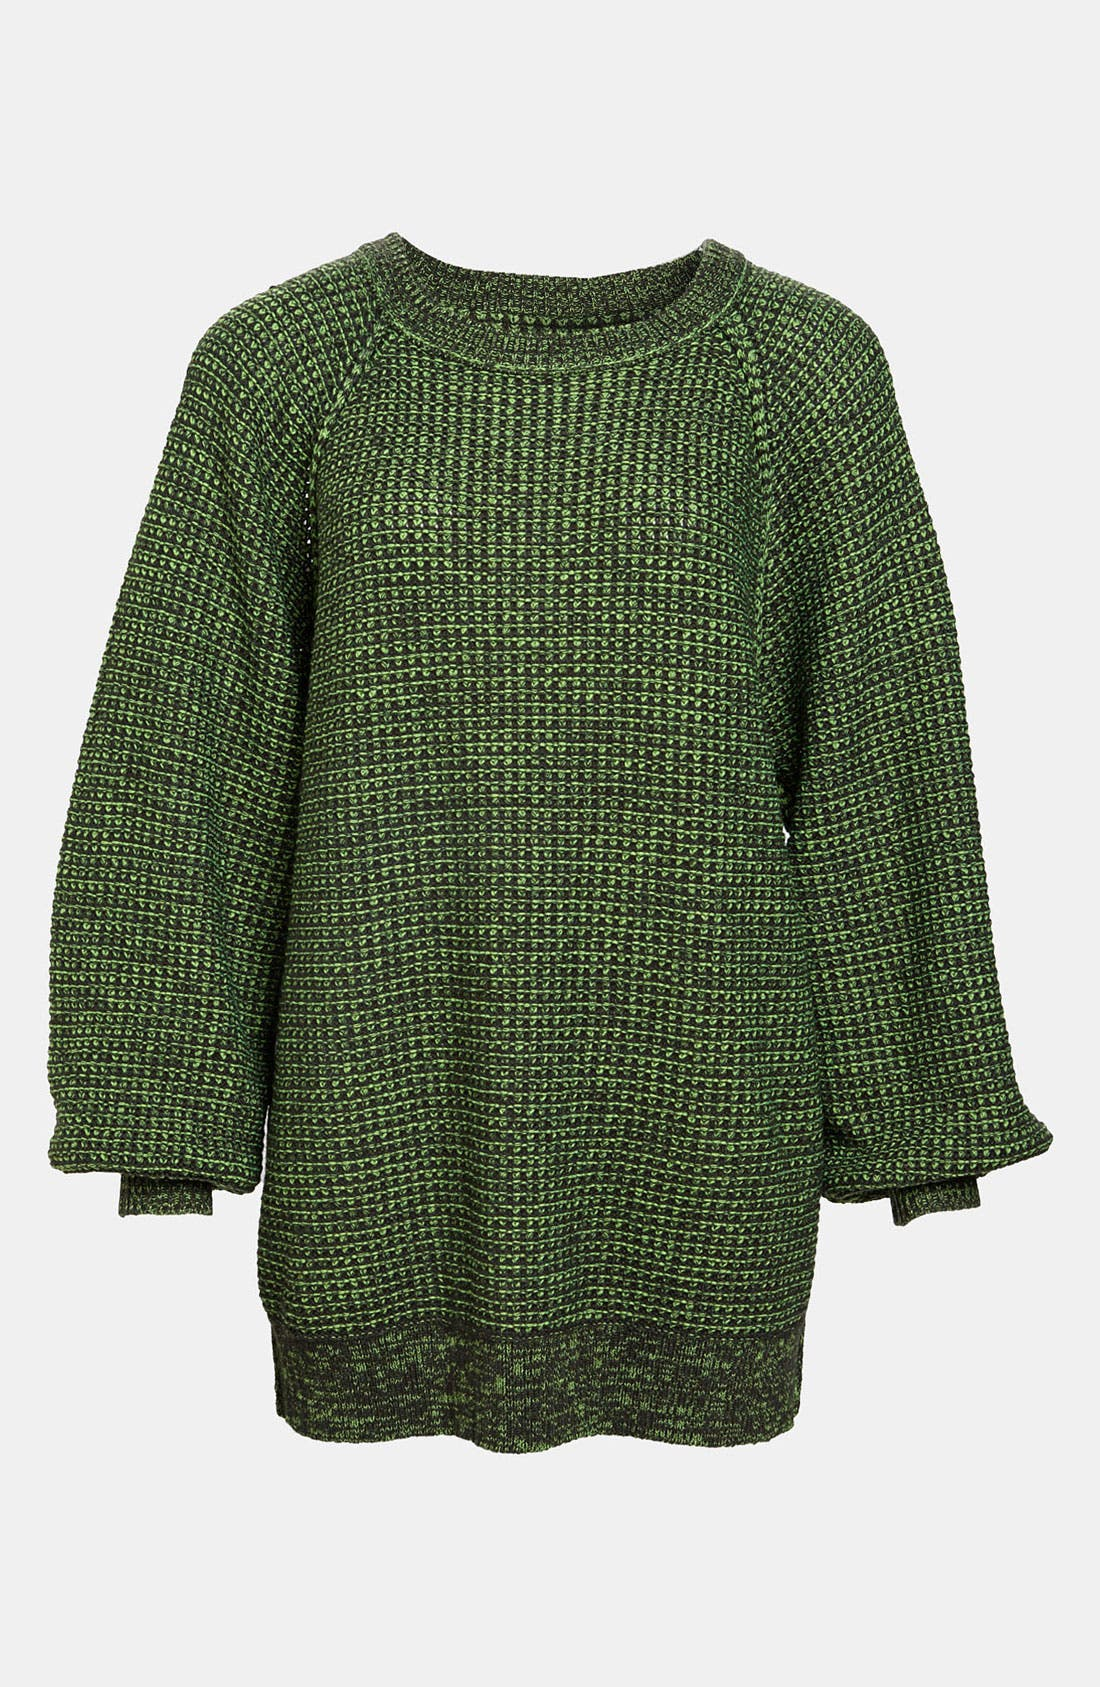 Main Image - Leith 'Track' Geometrical Knit Pullover